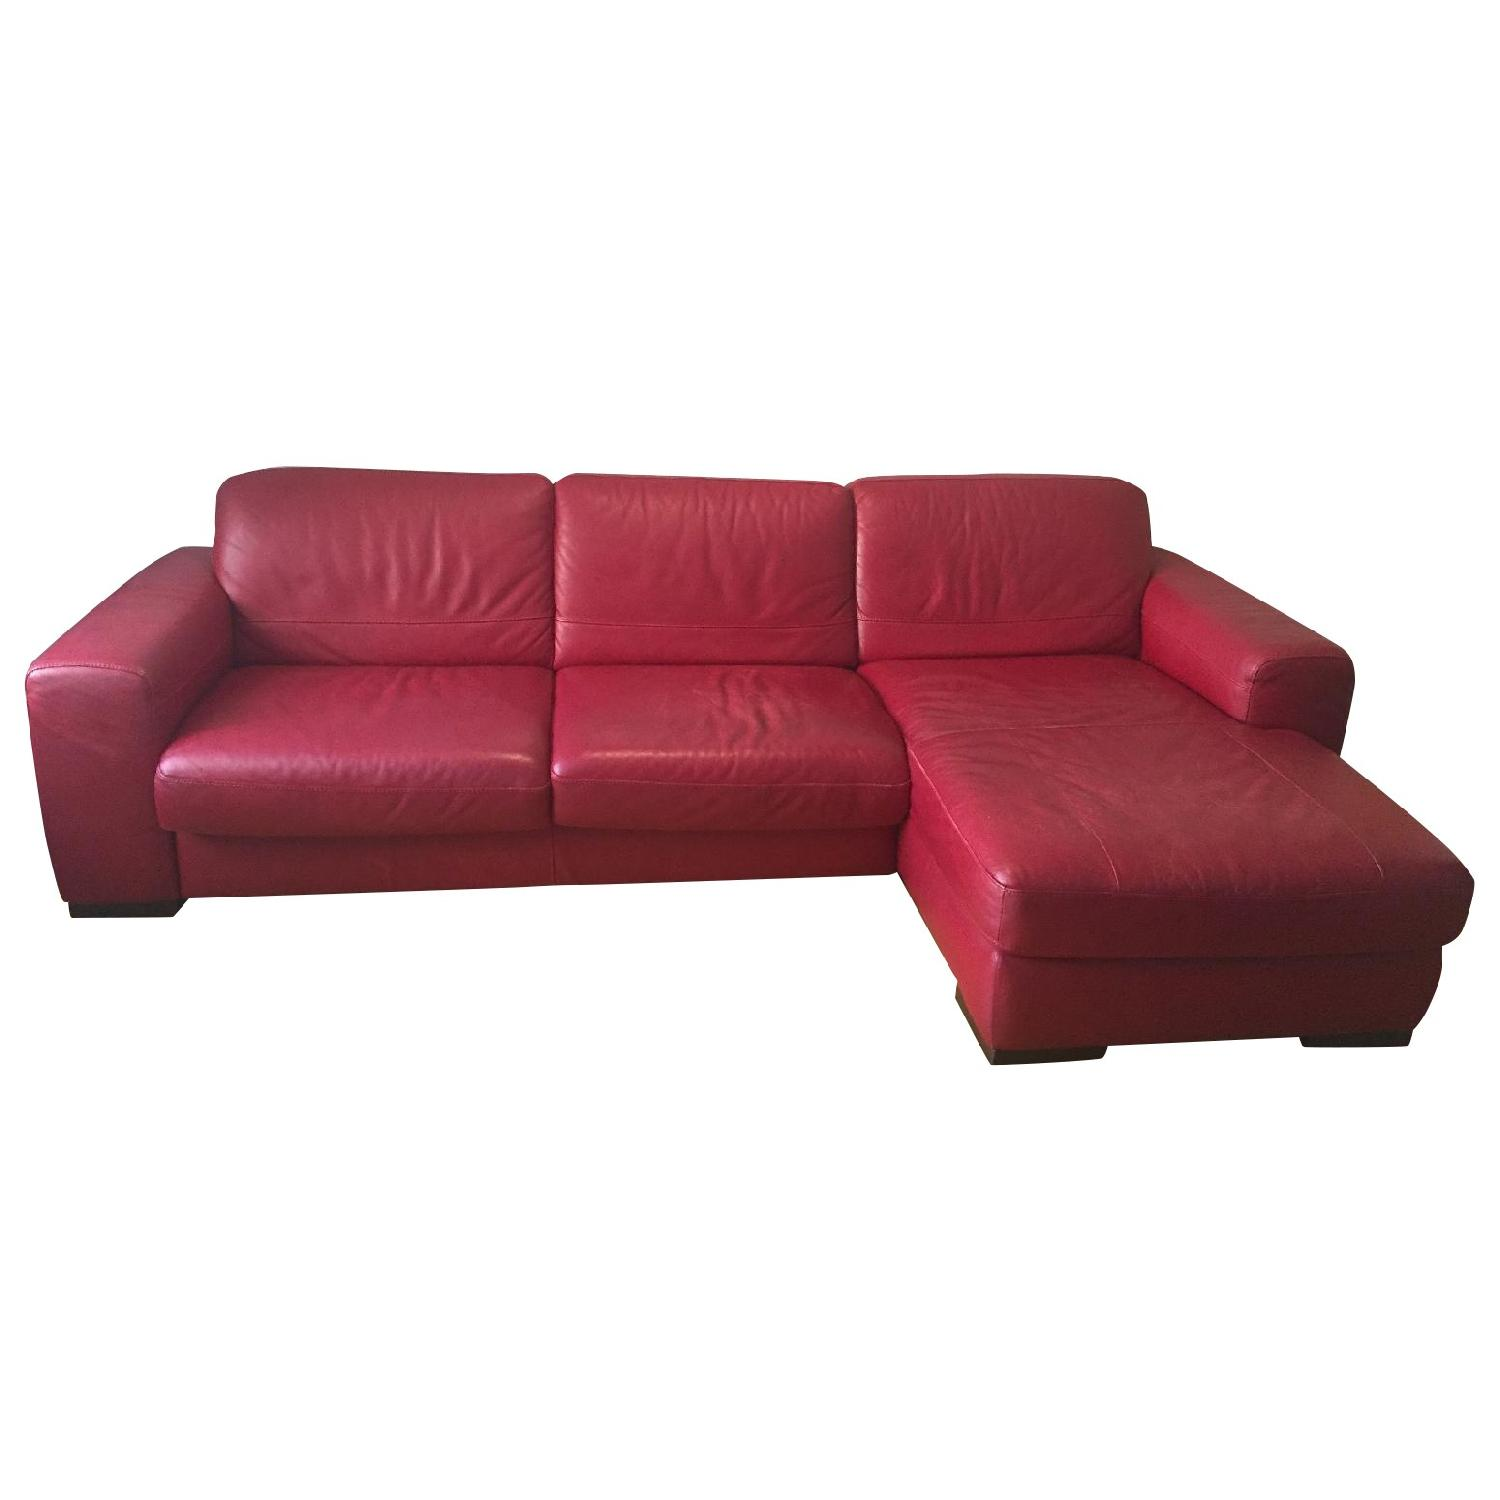 Macy S Red Leather Sleeper Sectional Sofa Aptdeco